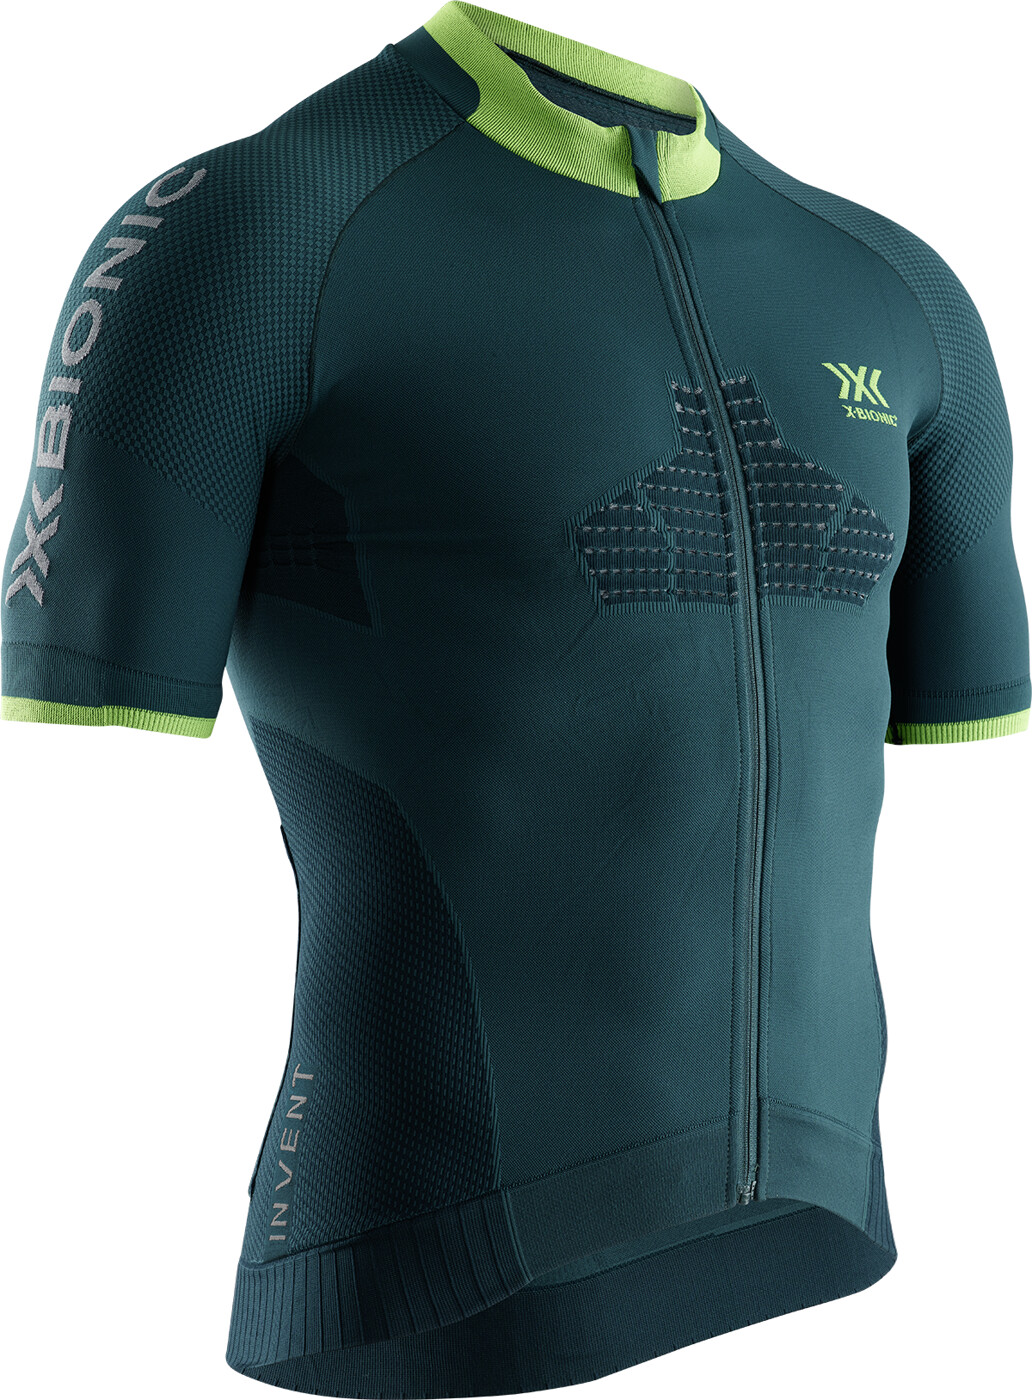 X-BIONIC INVENT® 4.0 CYCLING ZIP SHIRT - Herren